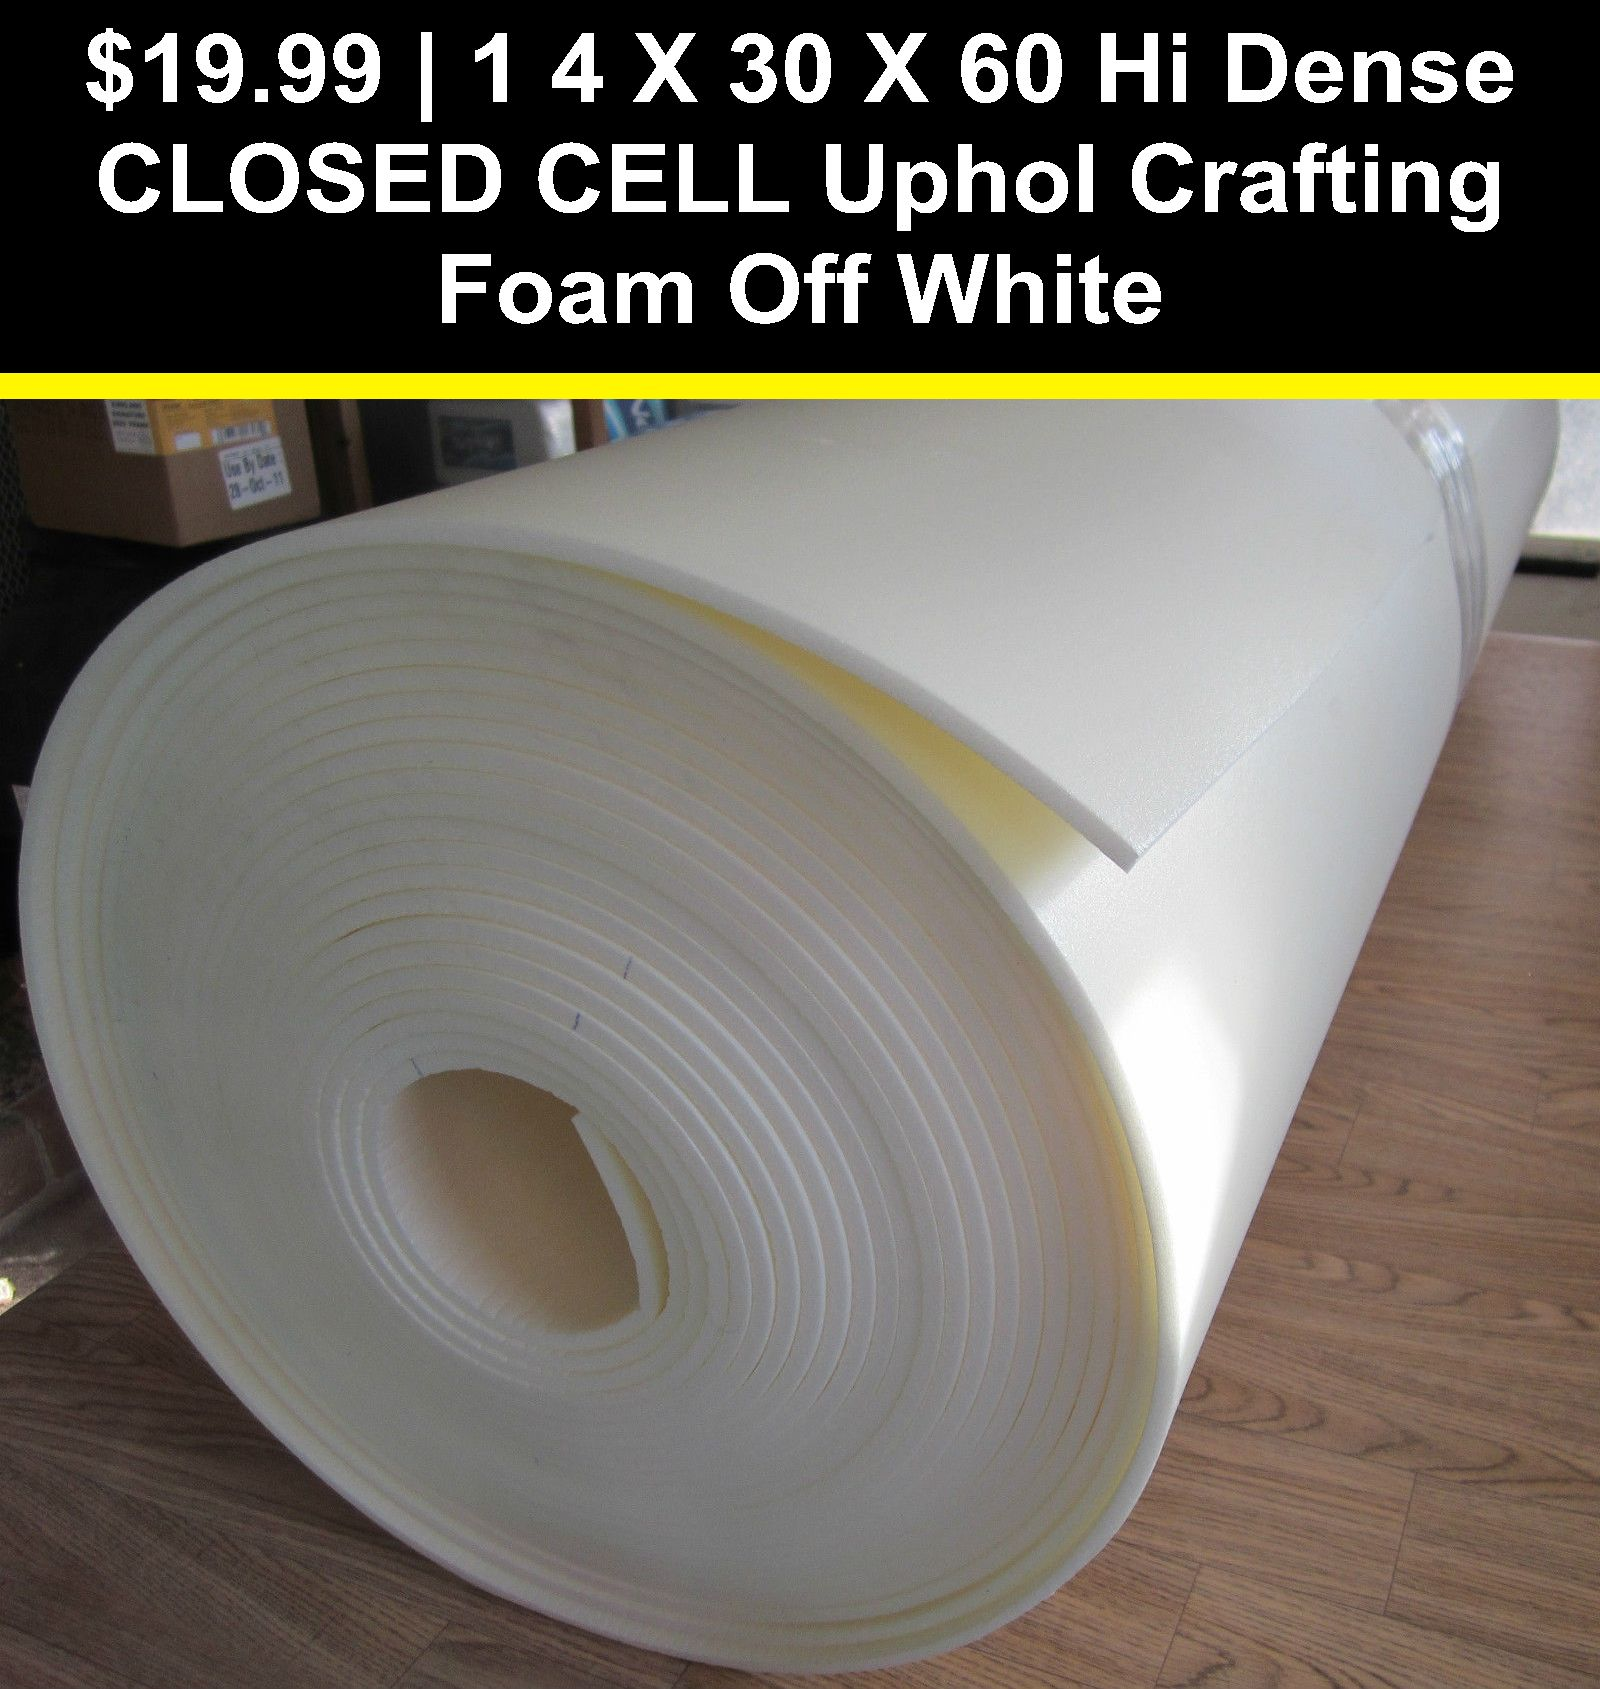 Styrofoam Forms 41200 1 4 X 30 X 60 Hi Dense Closed Cell Uphol Crafting Foam Off White Buy It Now Only 19 99 On Eba Foam Air Dry Modeling Clay Styrofoam